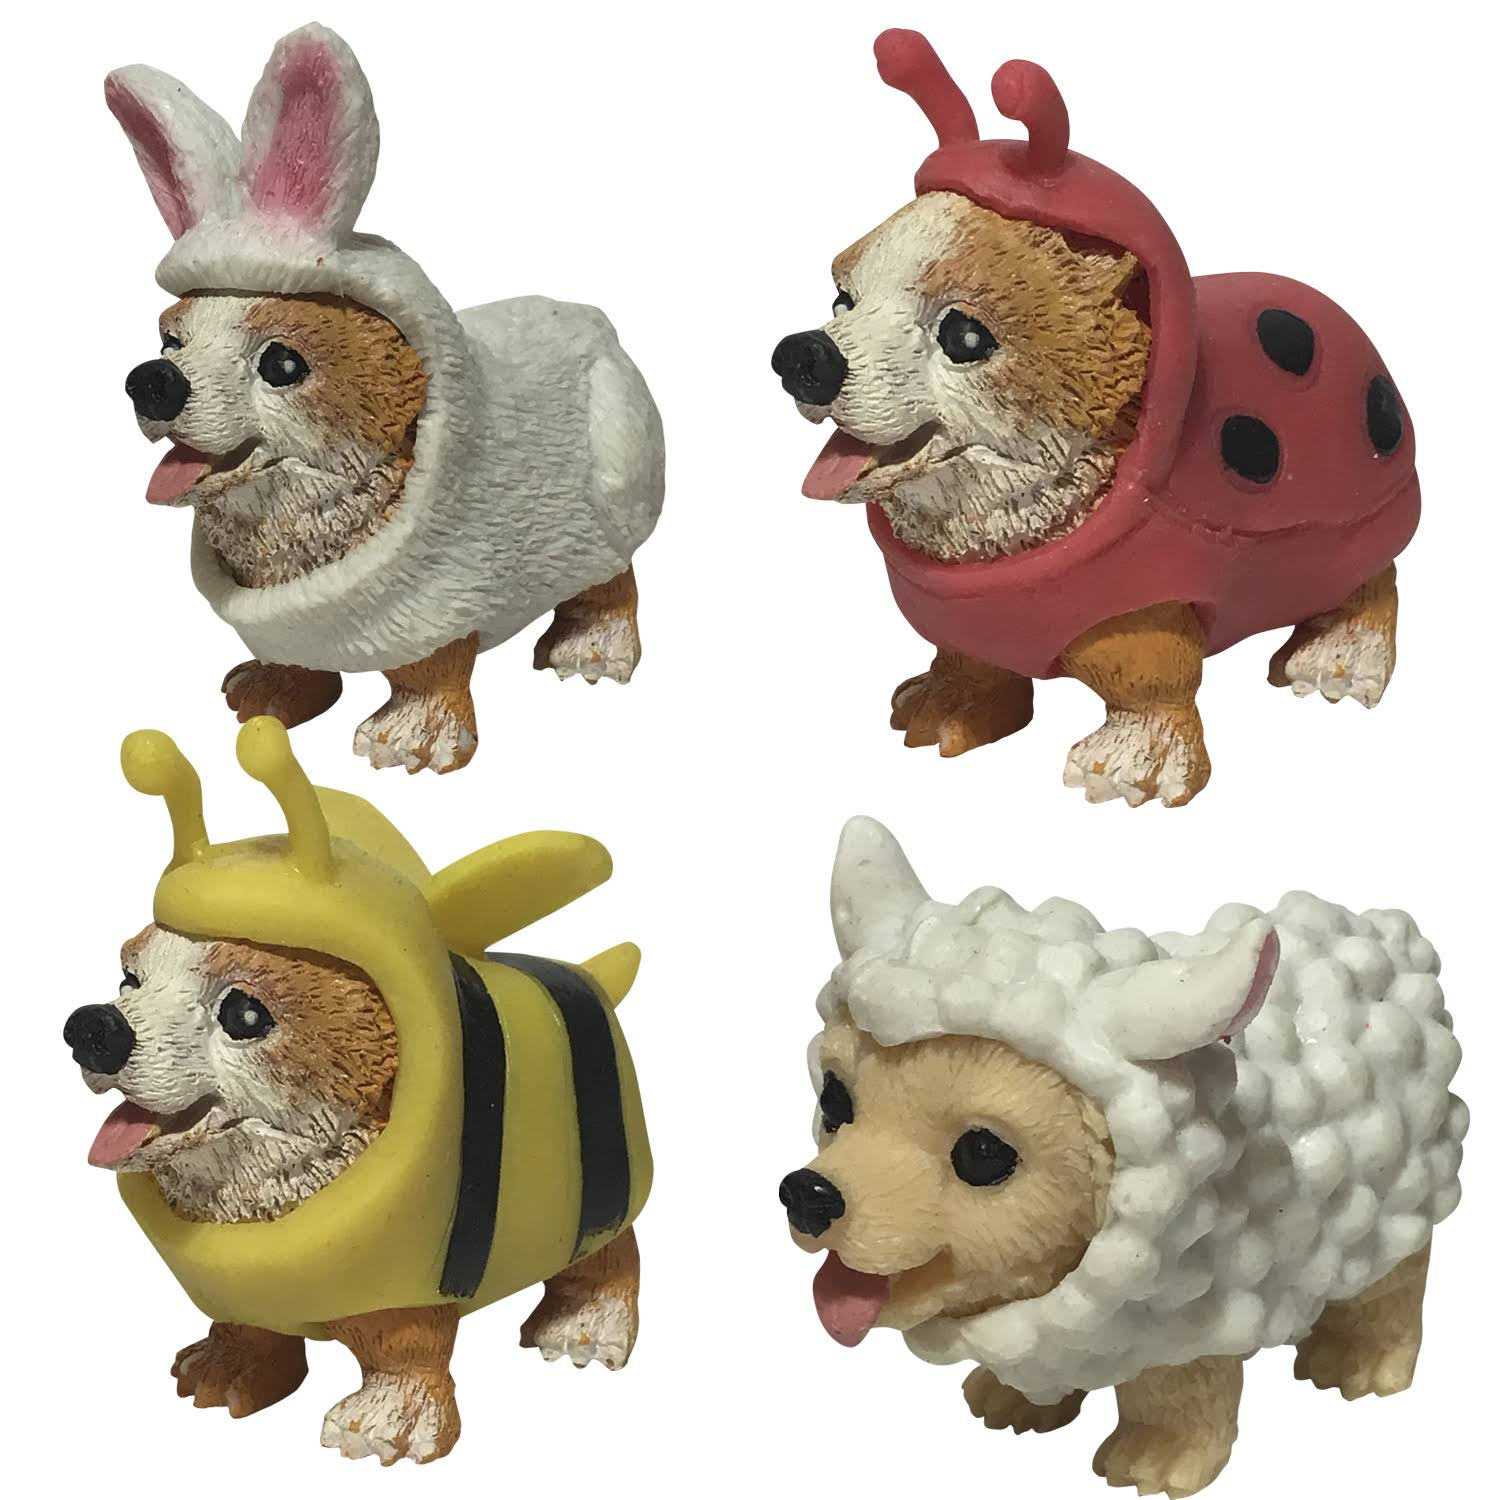 Schylling Party Puppies (One Random Style) - Novelty Toy (PTPA)